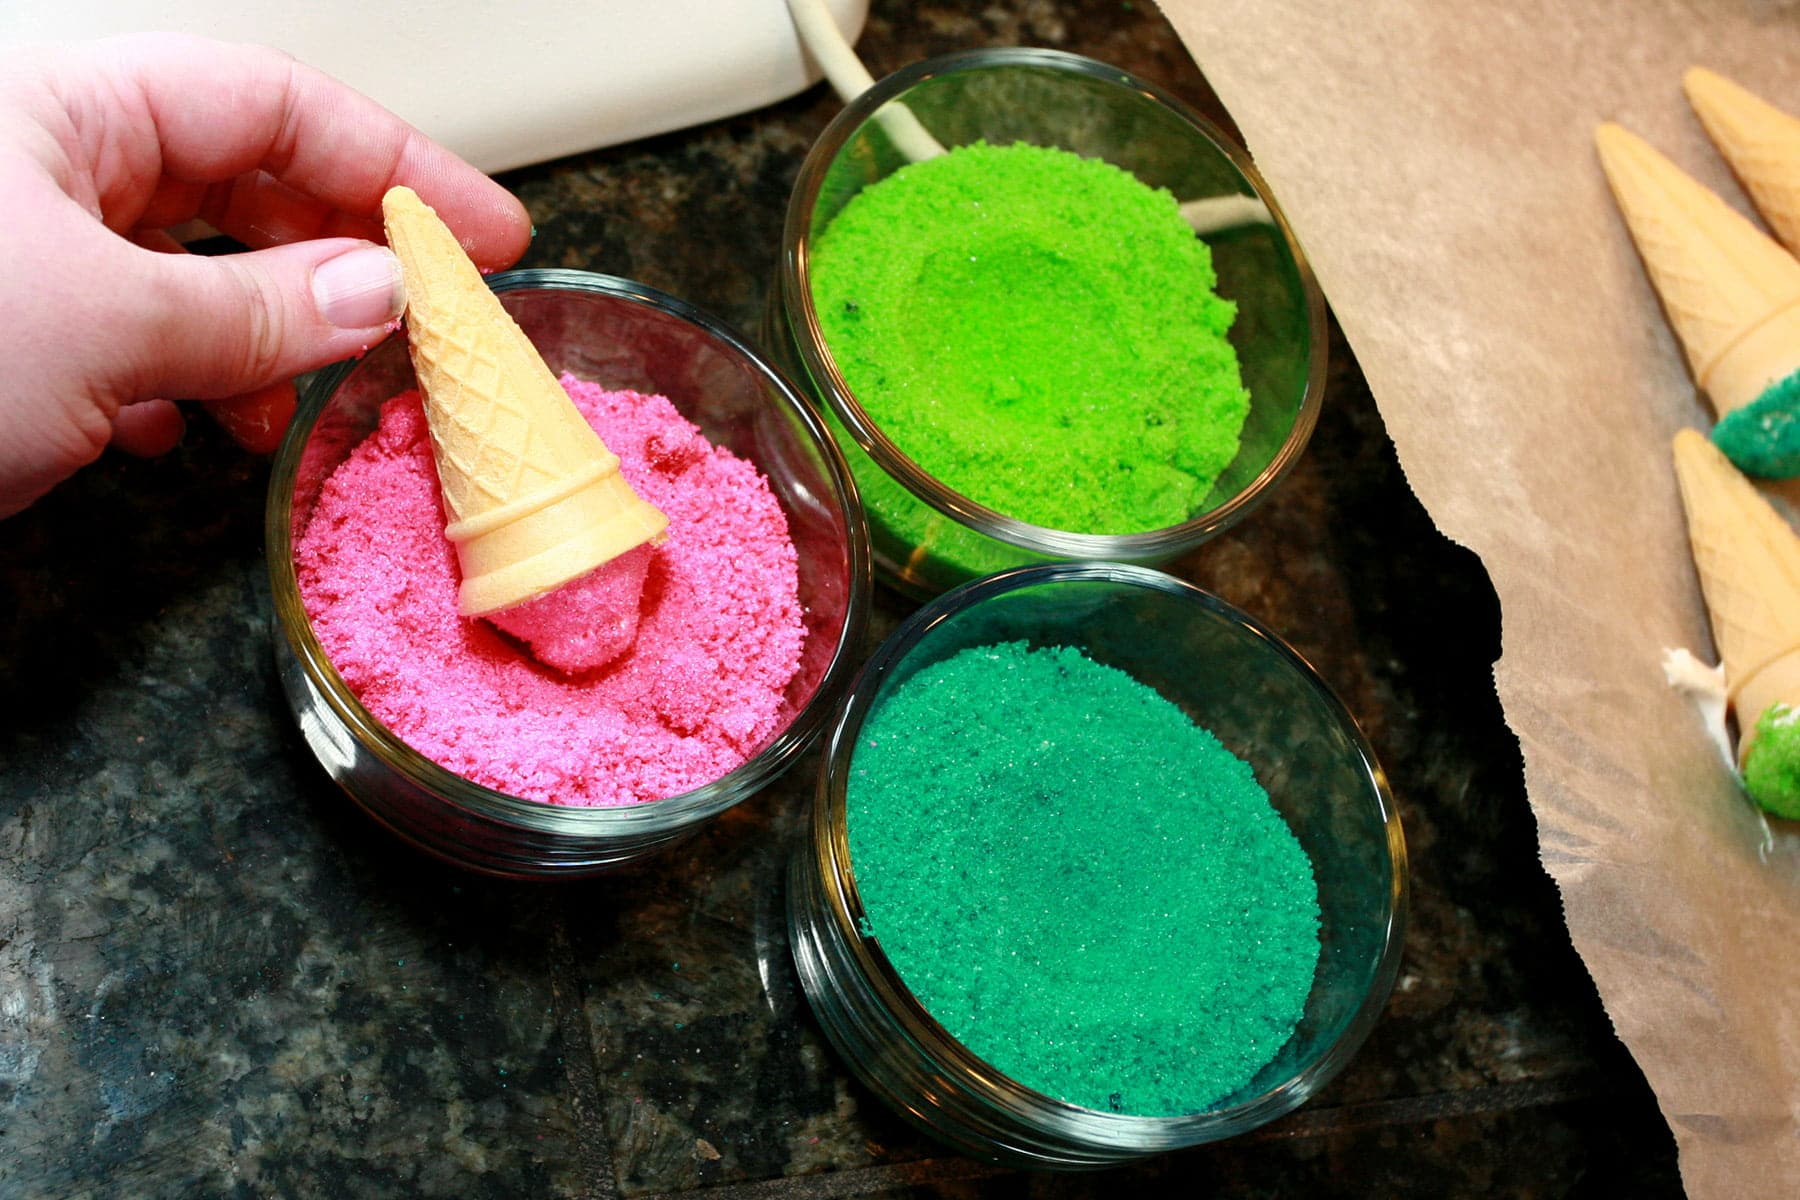 3 bowls of colourful sugar - hot pink, lime green, and teal. A hand twirls a freshly piped marshmallow cone in the pink sugar.